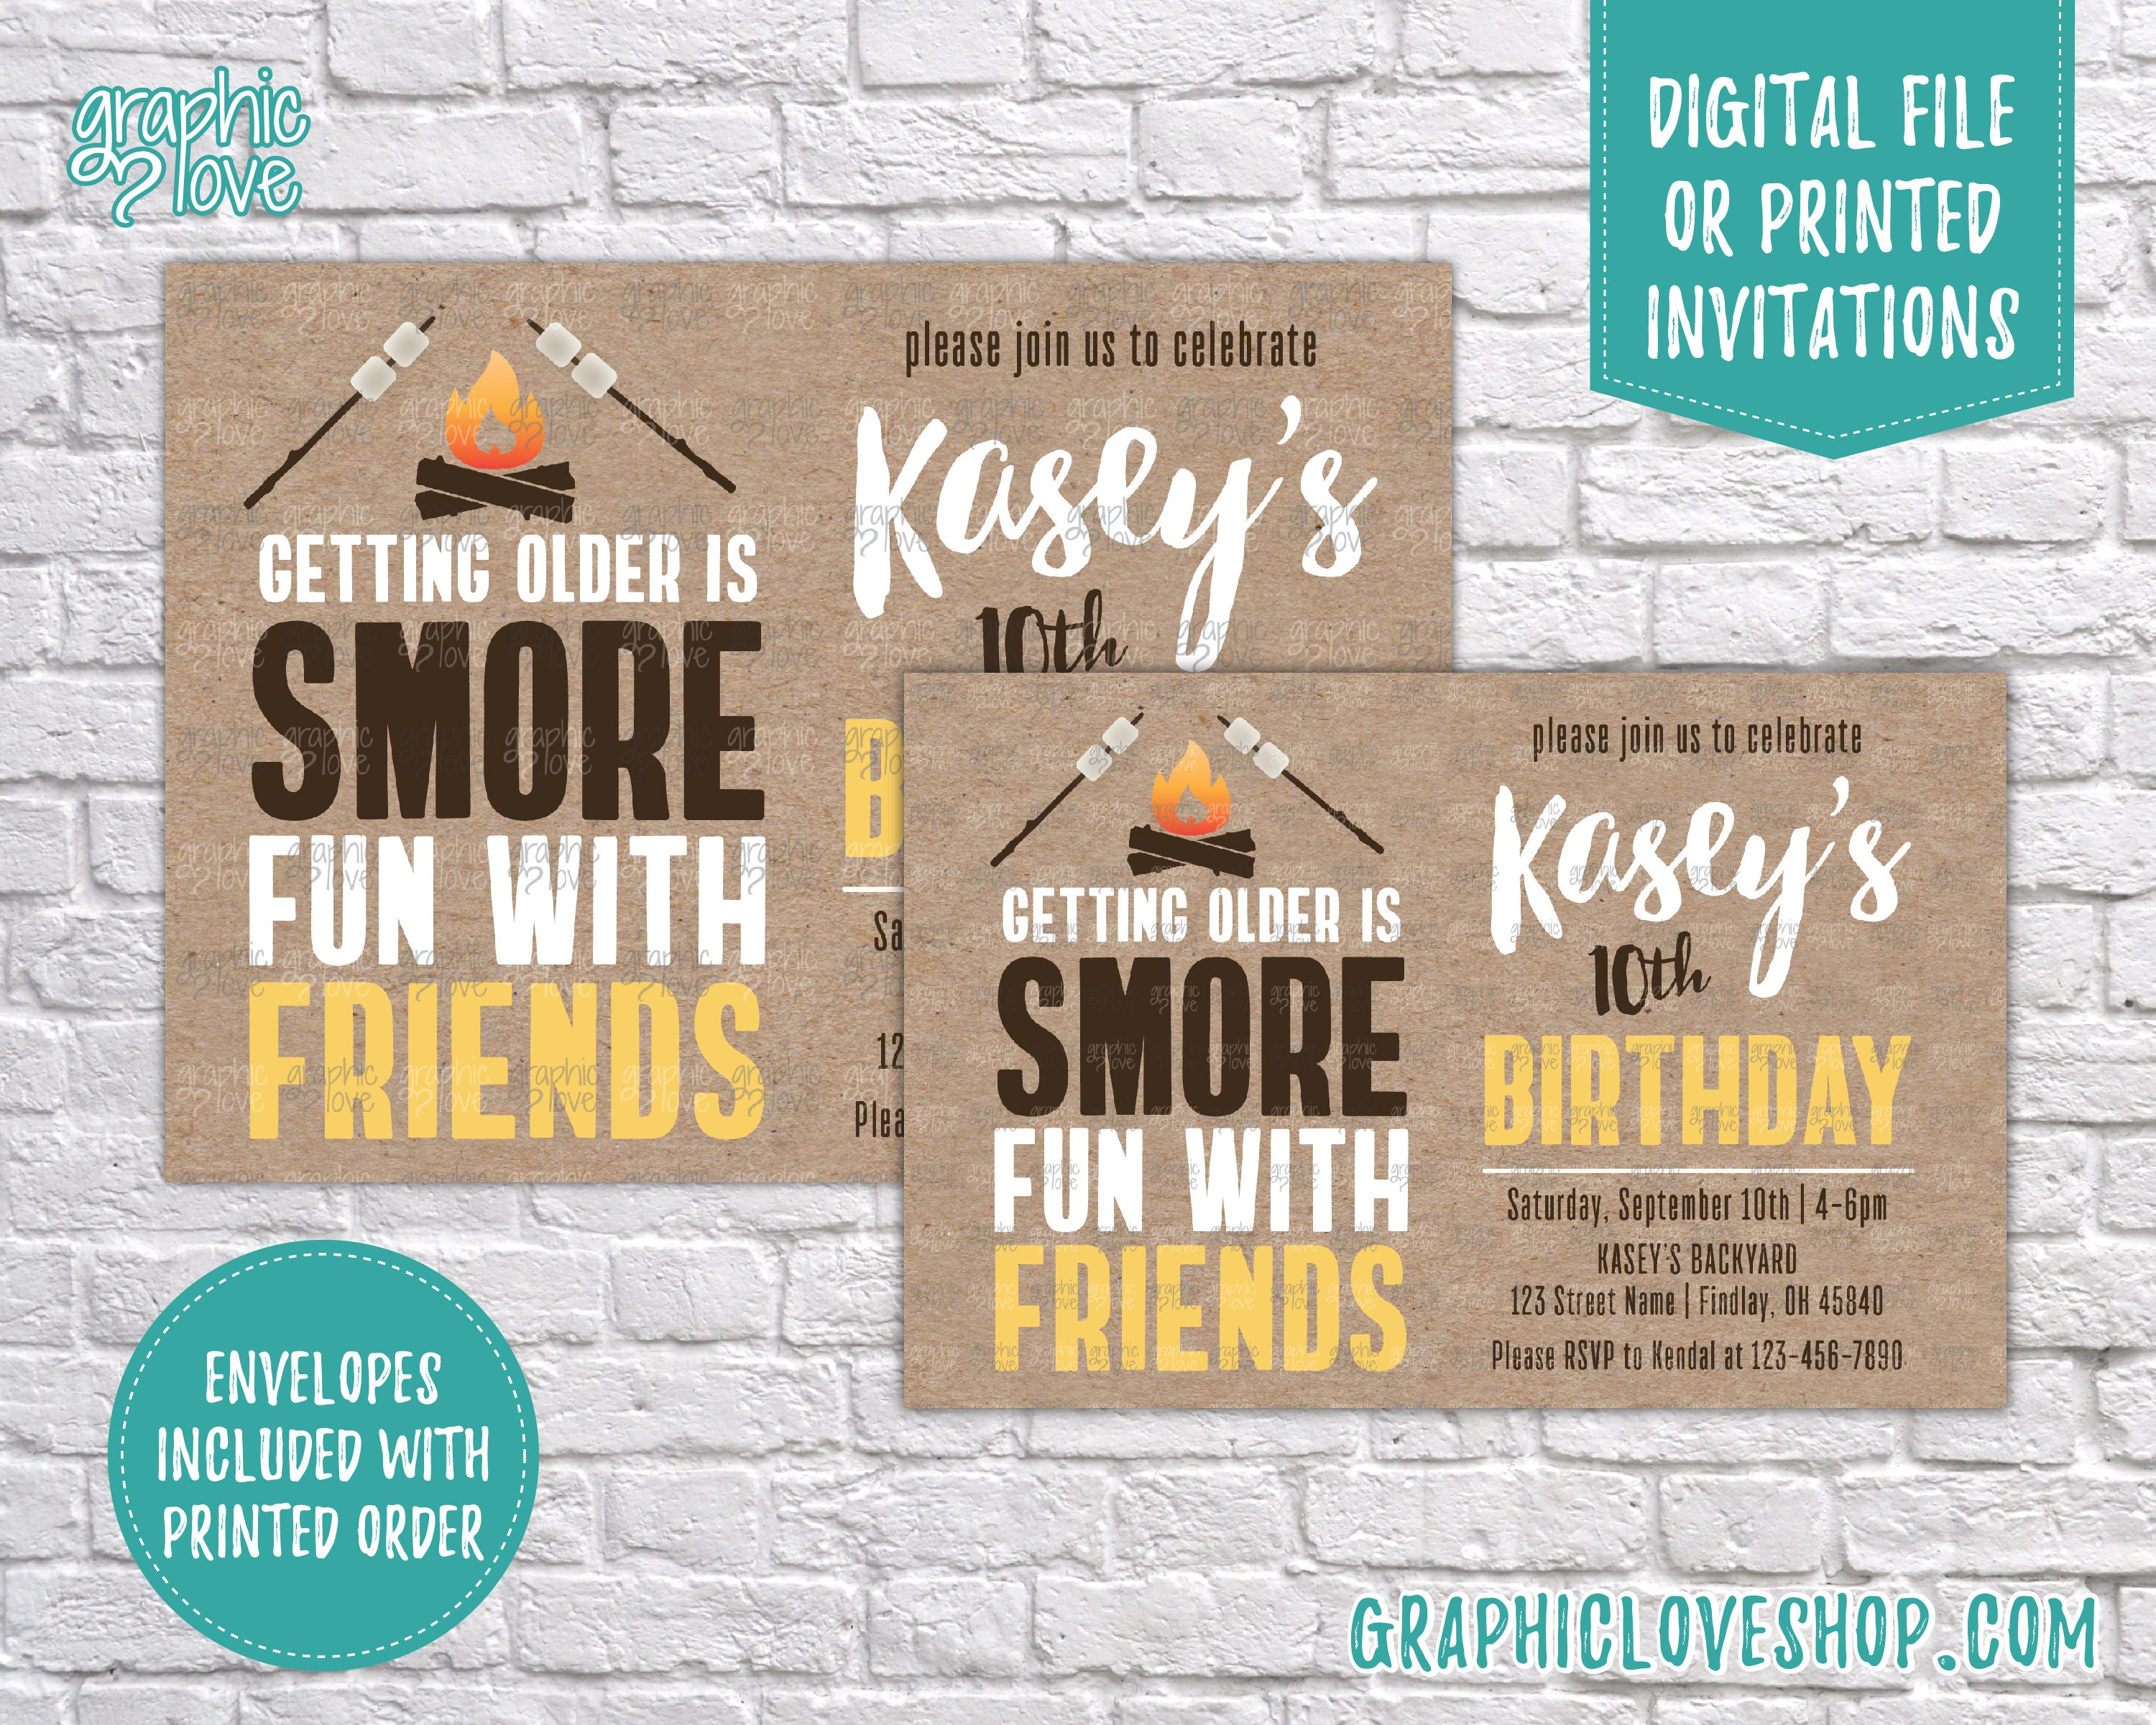 Smore Fun With Friends Fall Bonfire Personalized Birthday Invitation Any Age